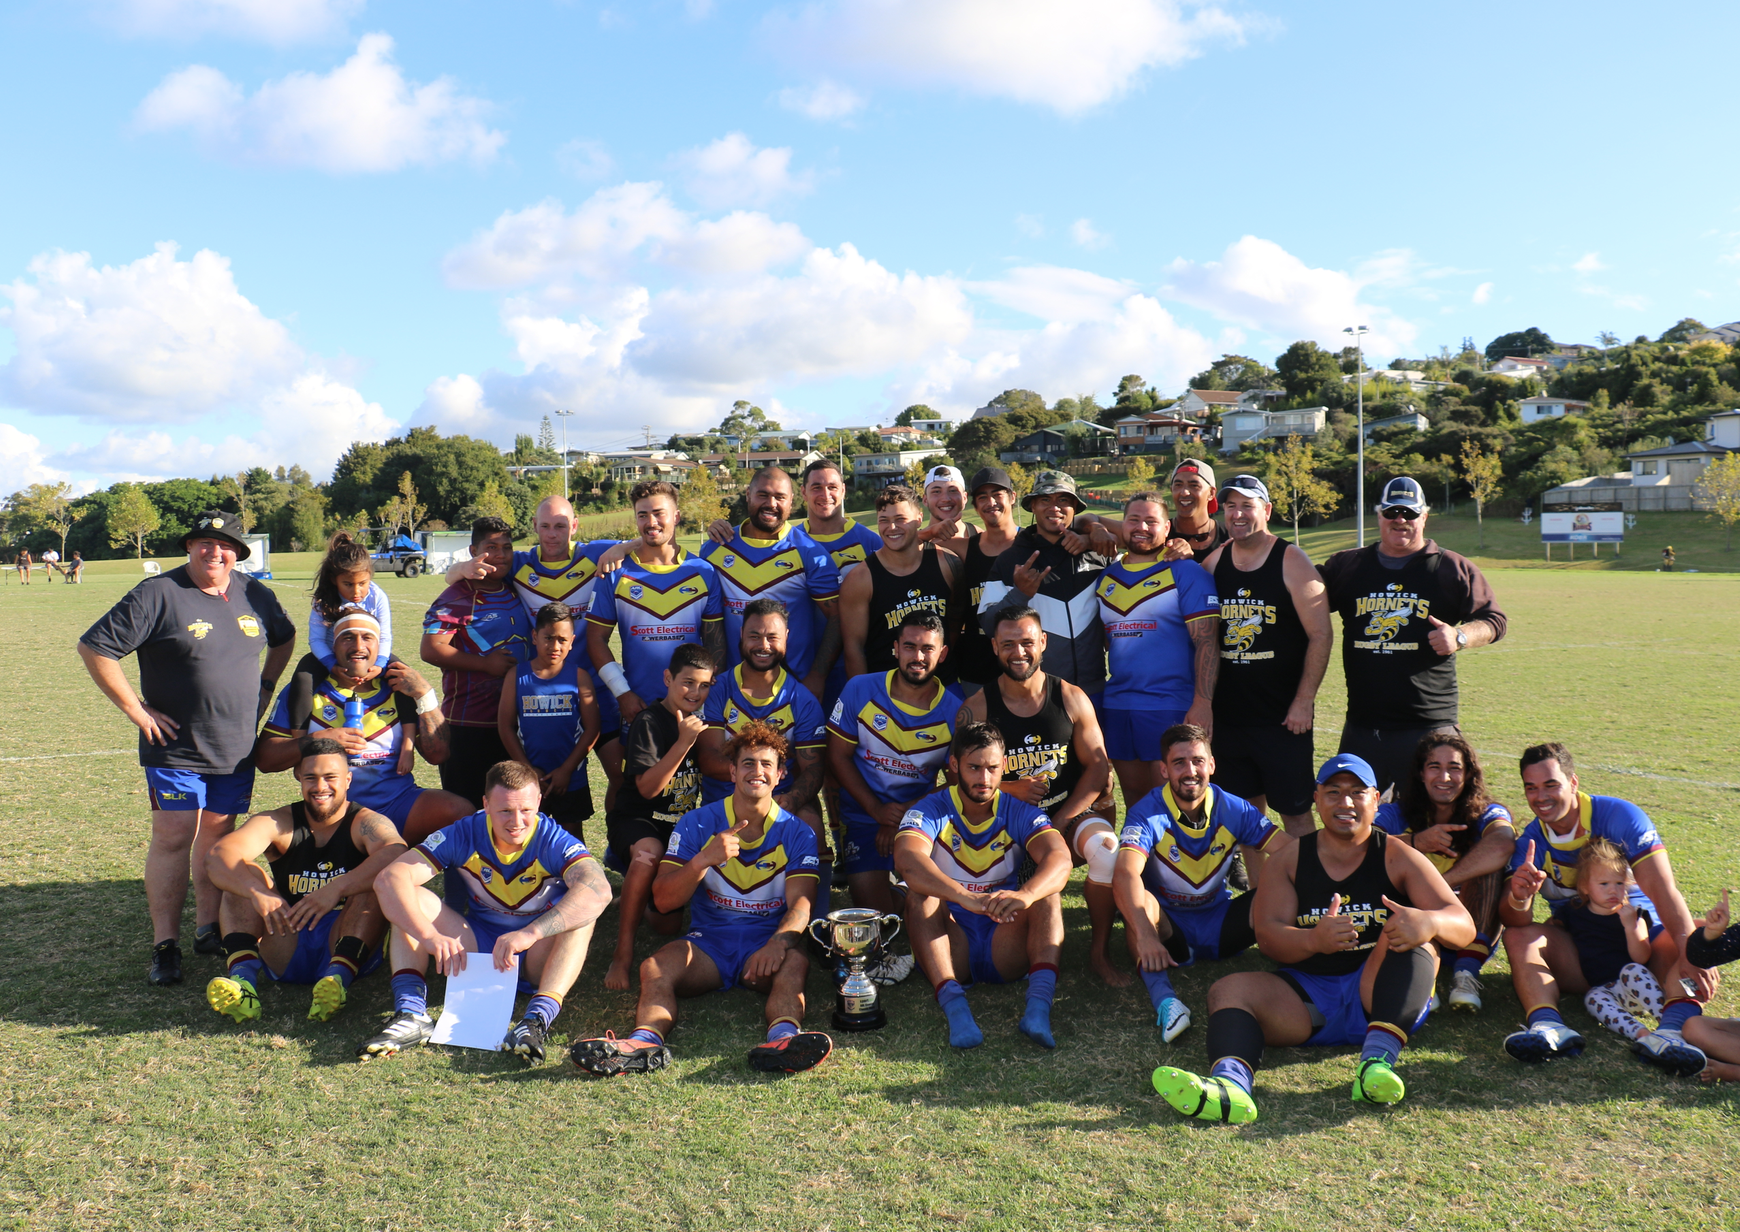 Howick, Manurewa claim titles at Auckland Rugby League Nines